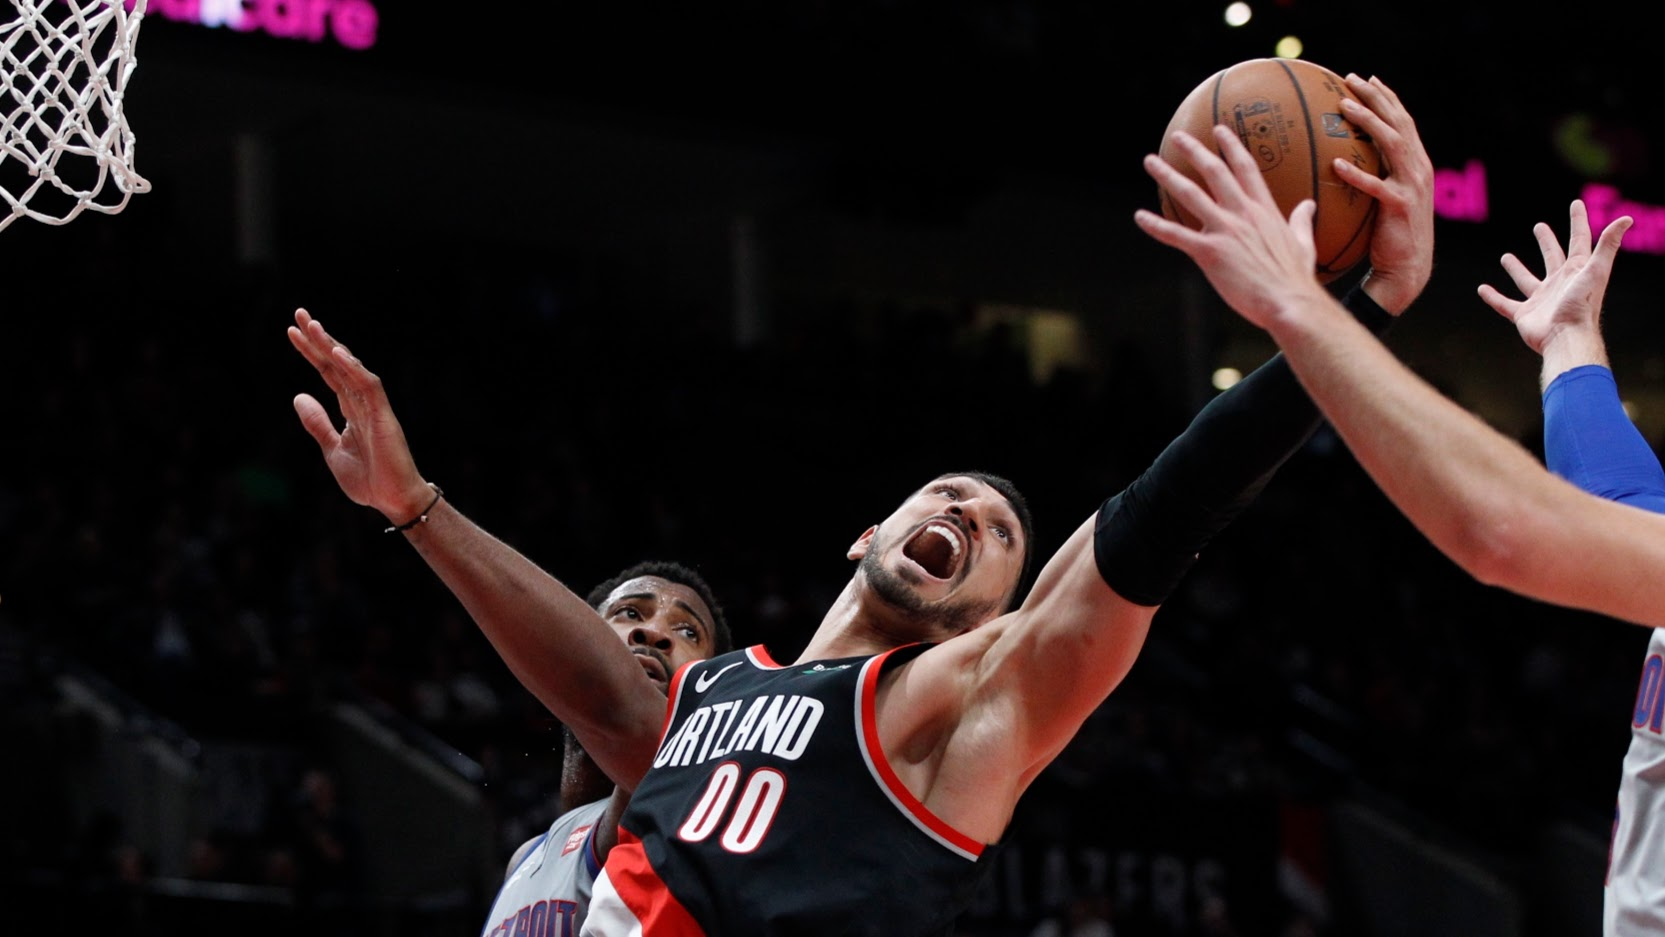 3-on-3 Blazers: Resilient Blazers keep winning without Nurkic, can they keep it up?